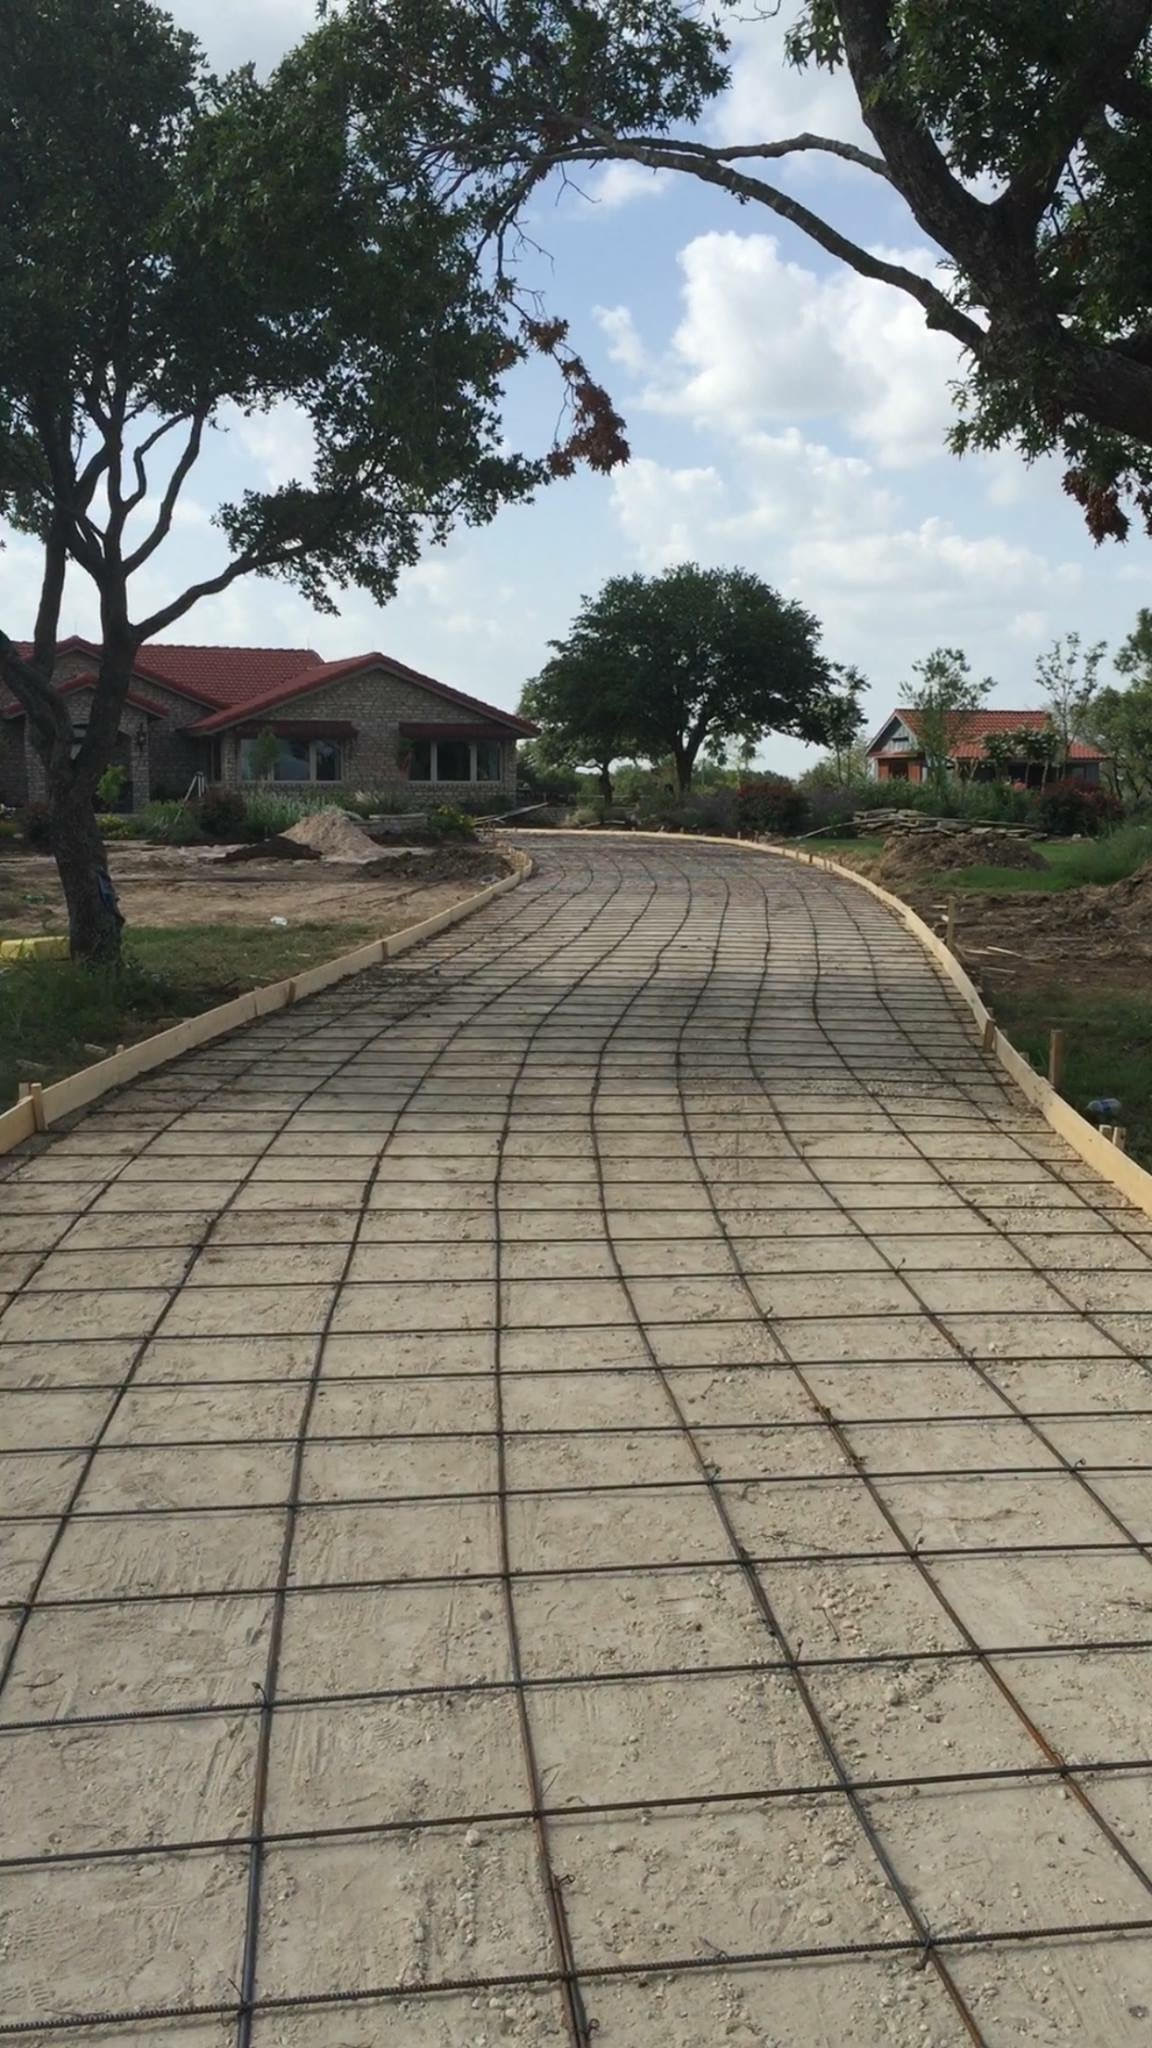 All forms and rebar installed and ready for concrete on this residential driveway